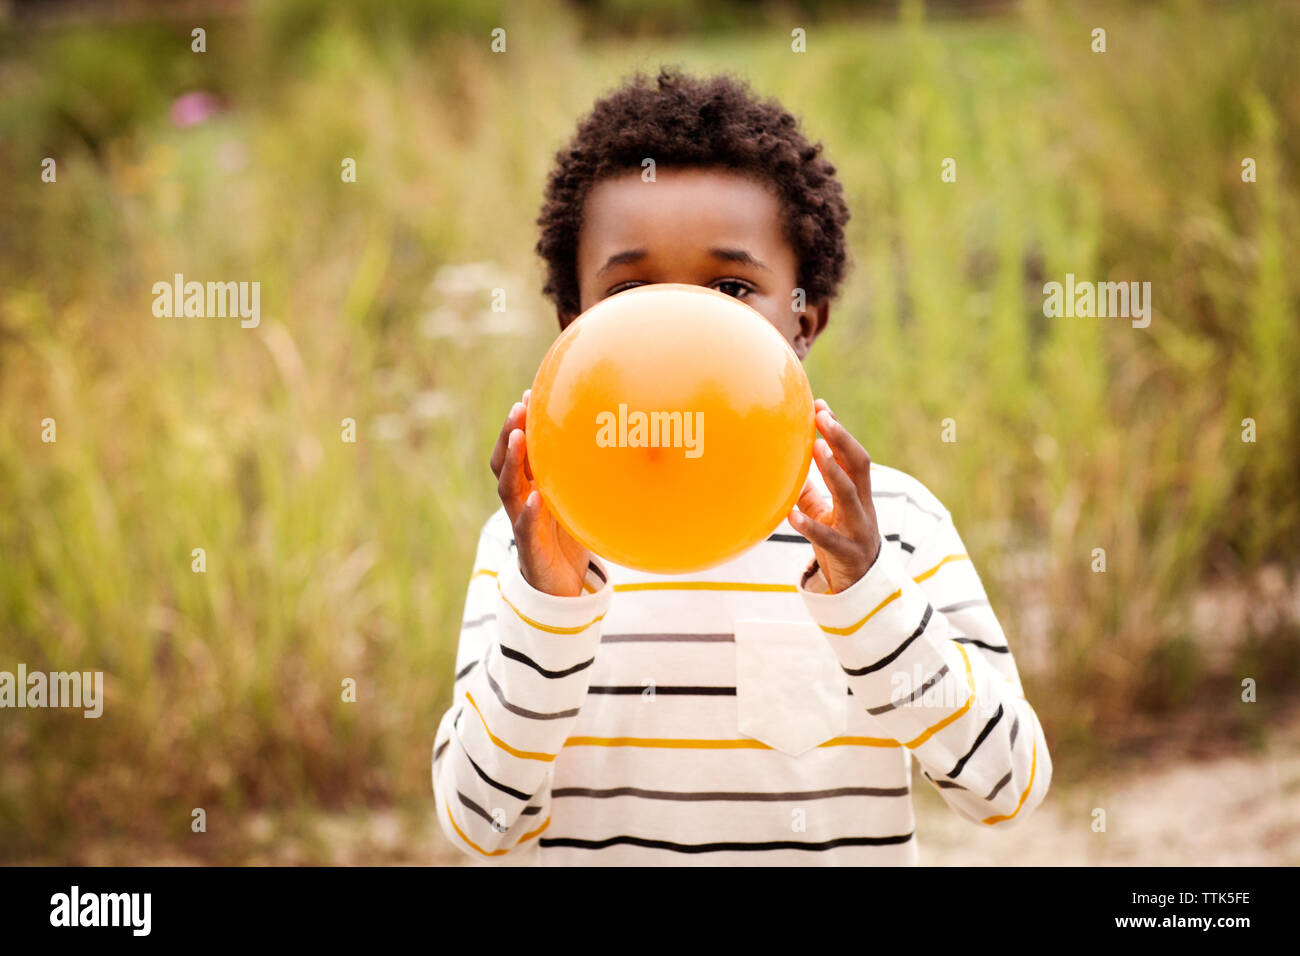 Boy blowing balloon while standing against grass field - Stock Image